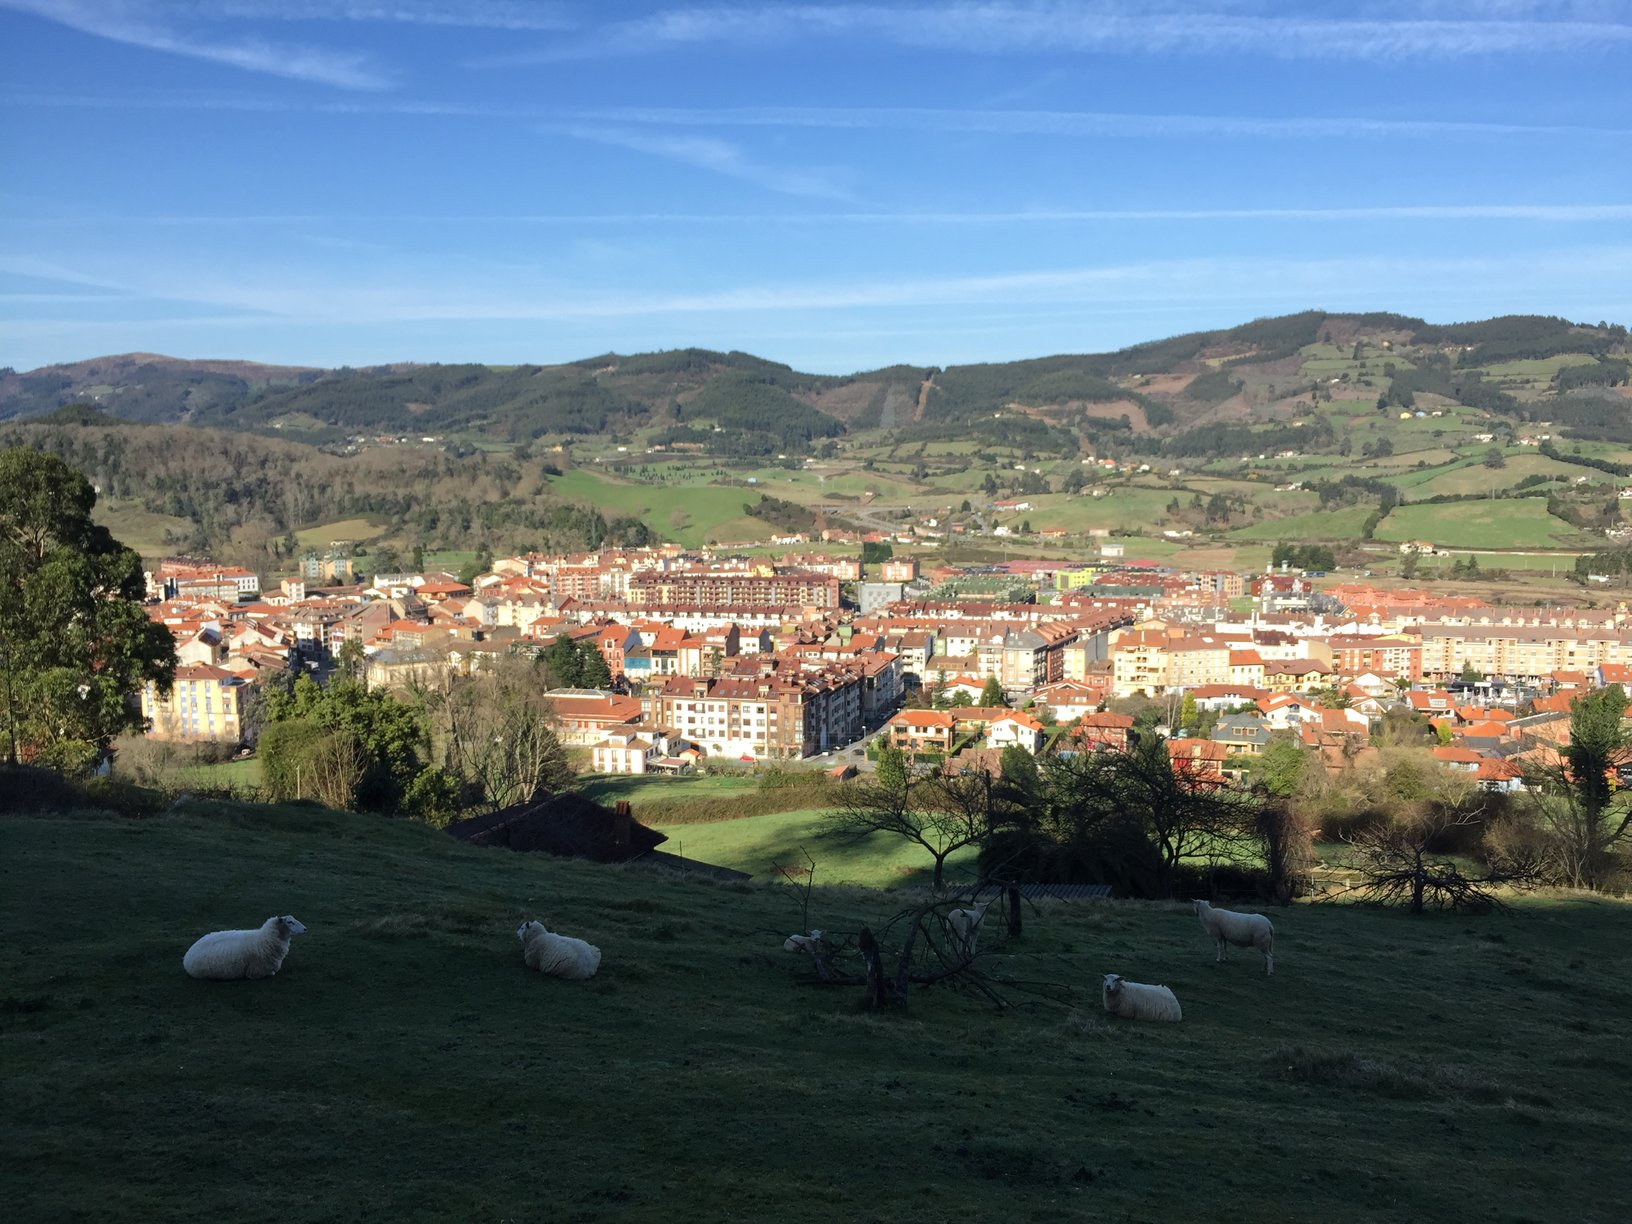 Students gazed upon fishing villages in Asturias from on top of a mountain.